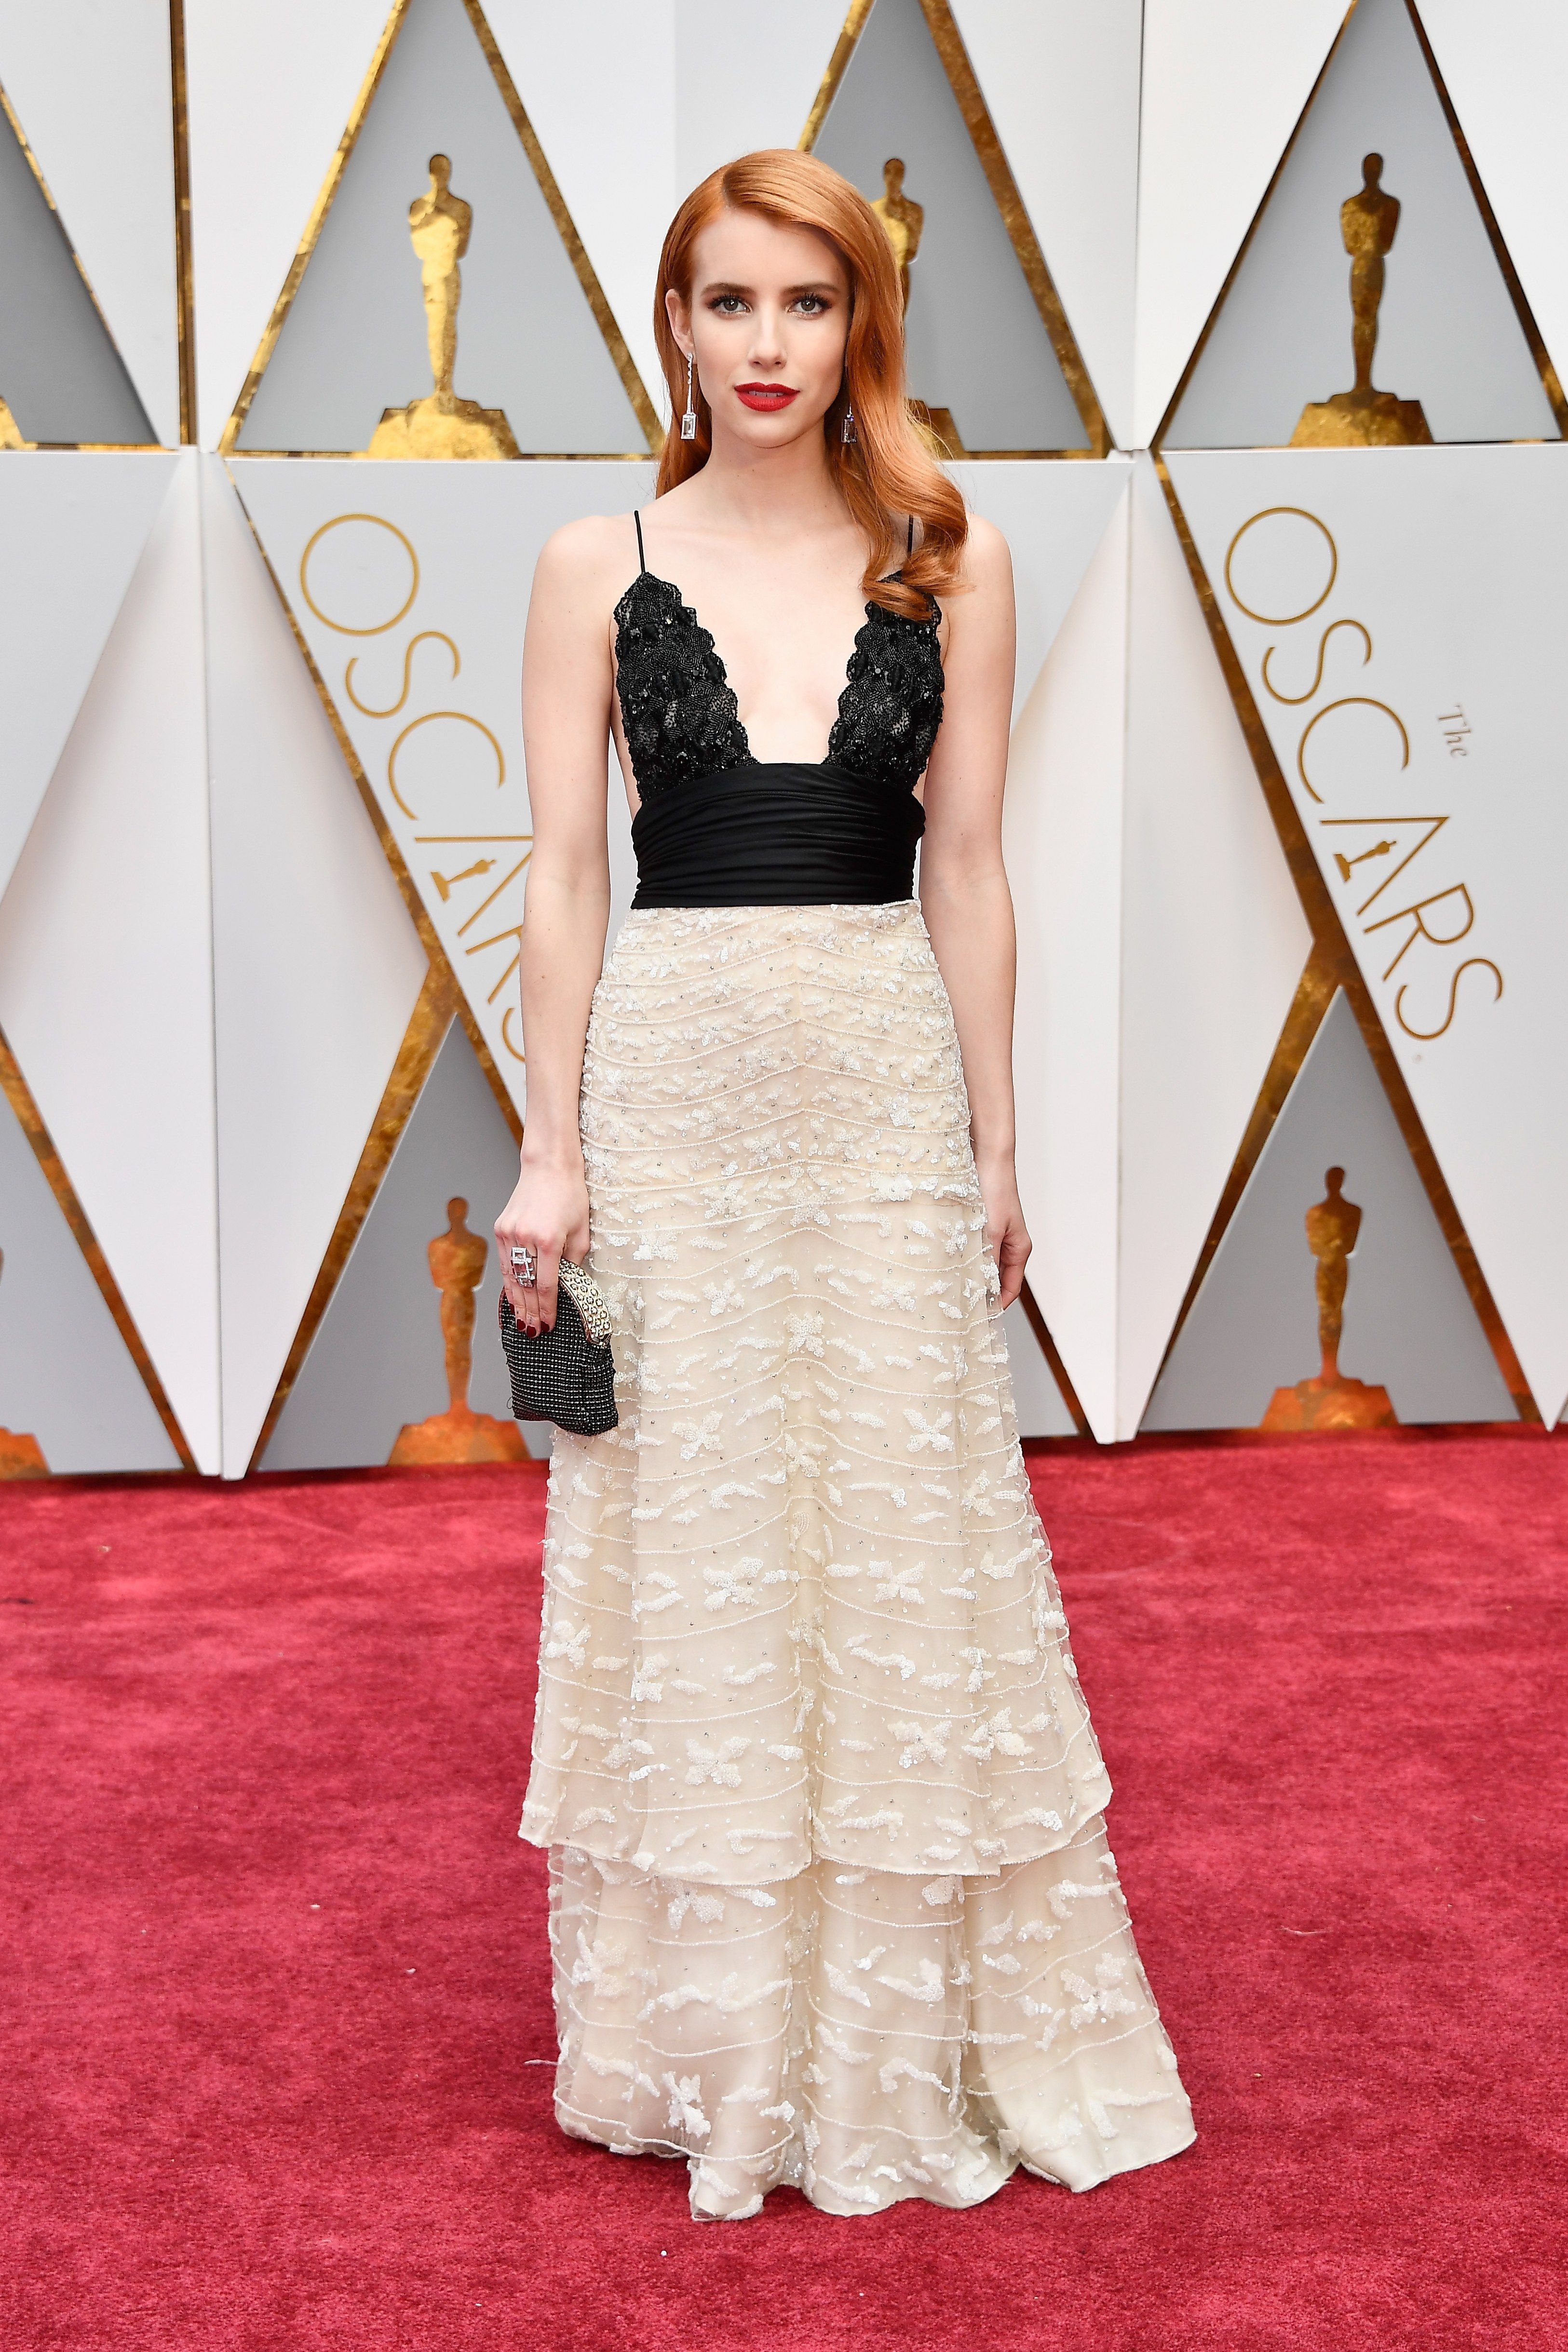 Oscars 2017 Fashion Live From The Red Carpet Red Carpet Oscars Red Carpet Dresses 2017 Red Carpet Dresses